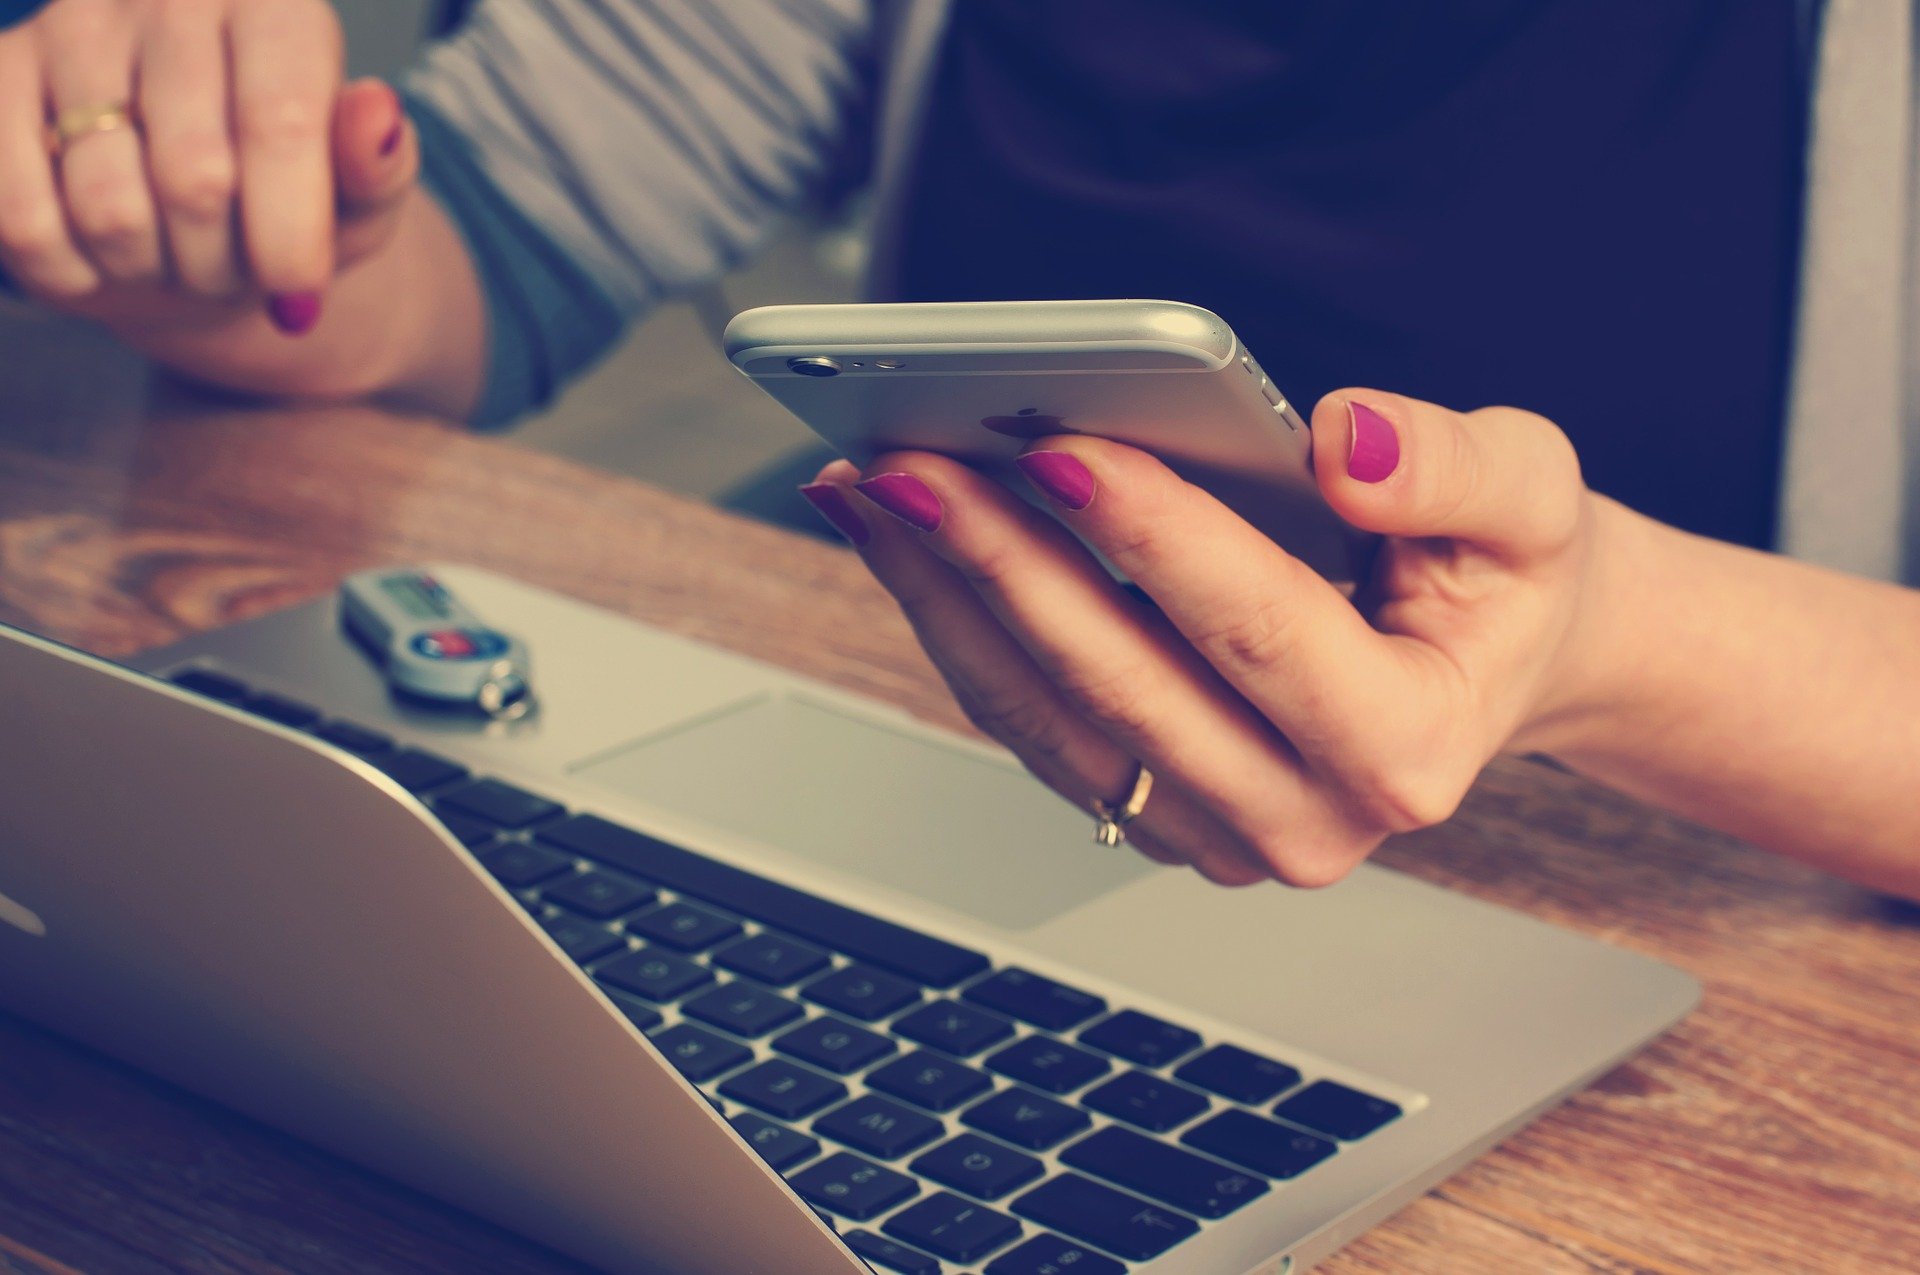 4 New Ways to Integrate Technology In Your Business to Make it More Accessible